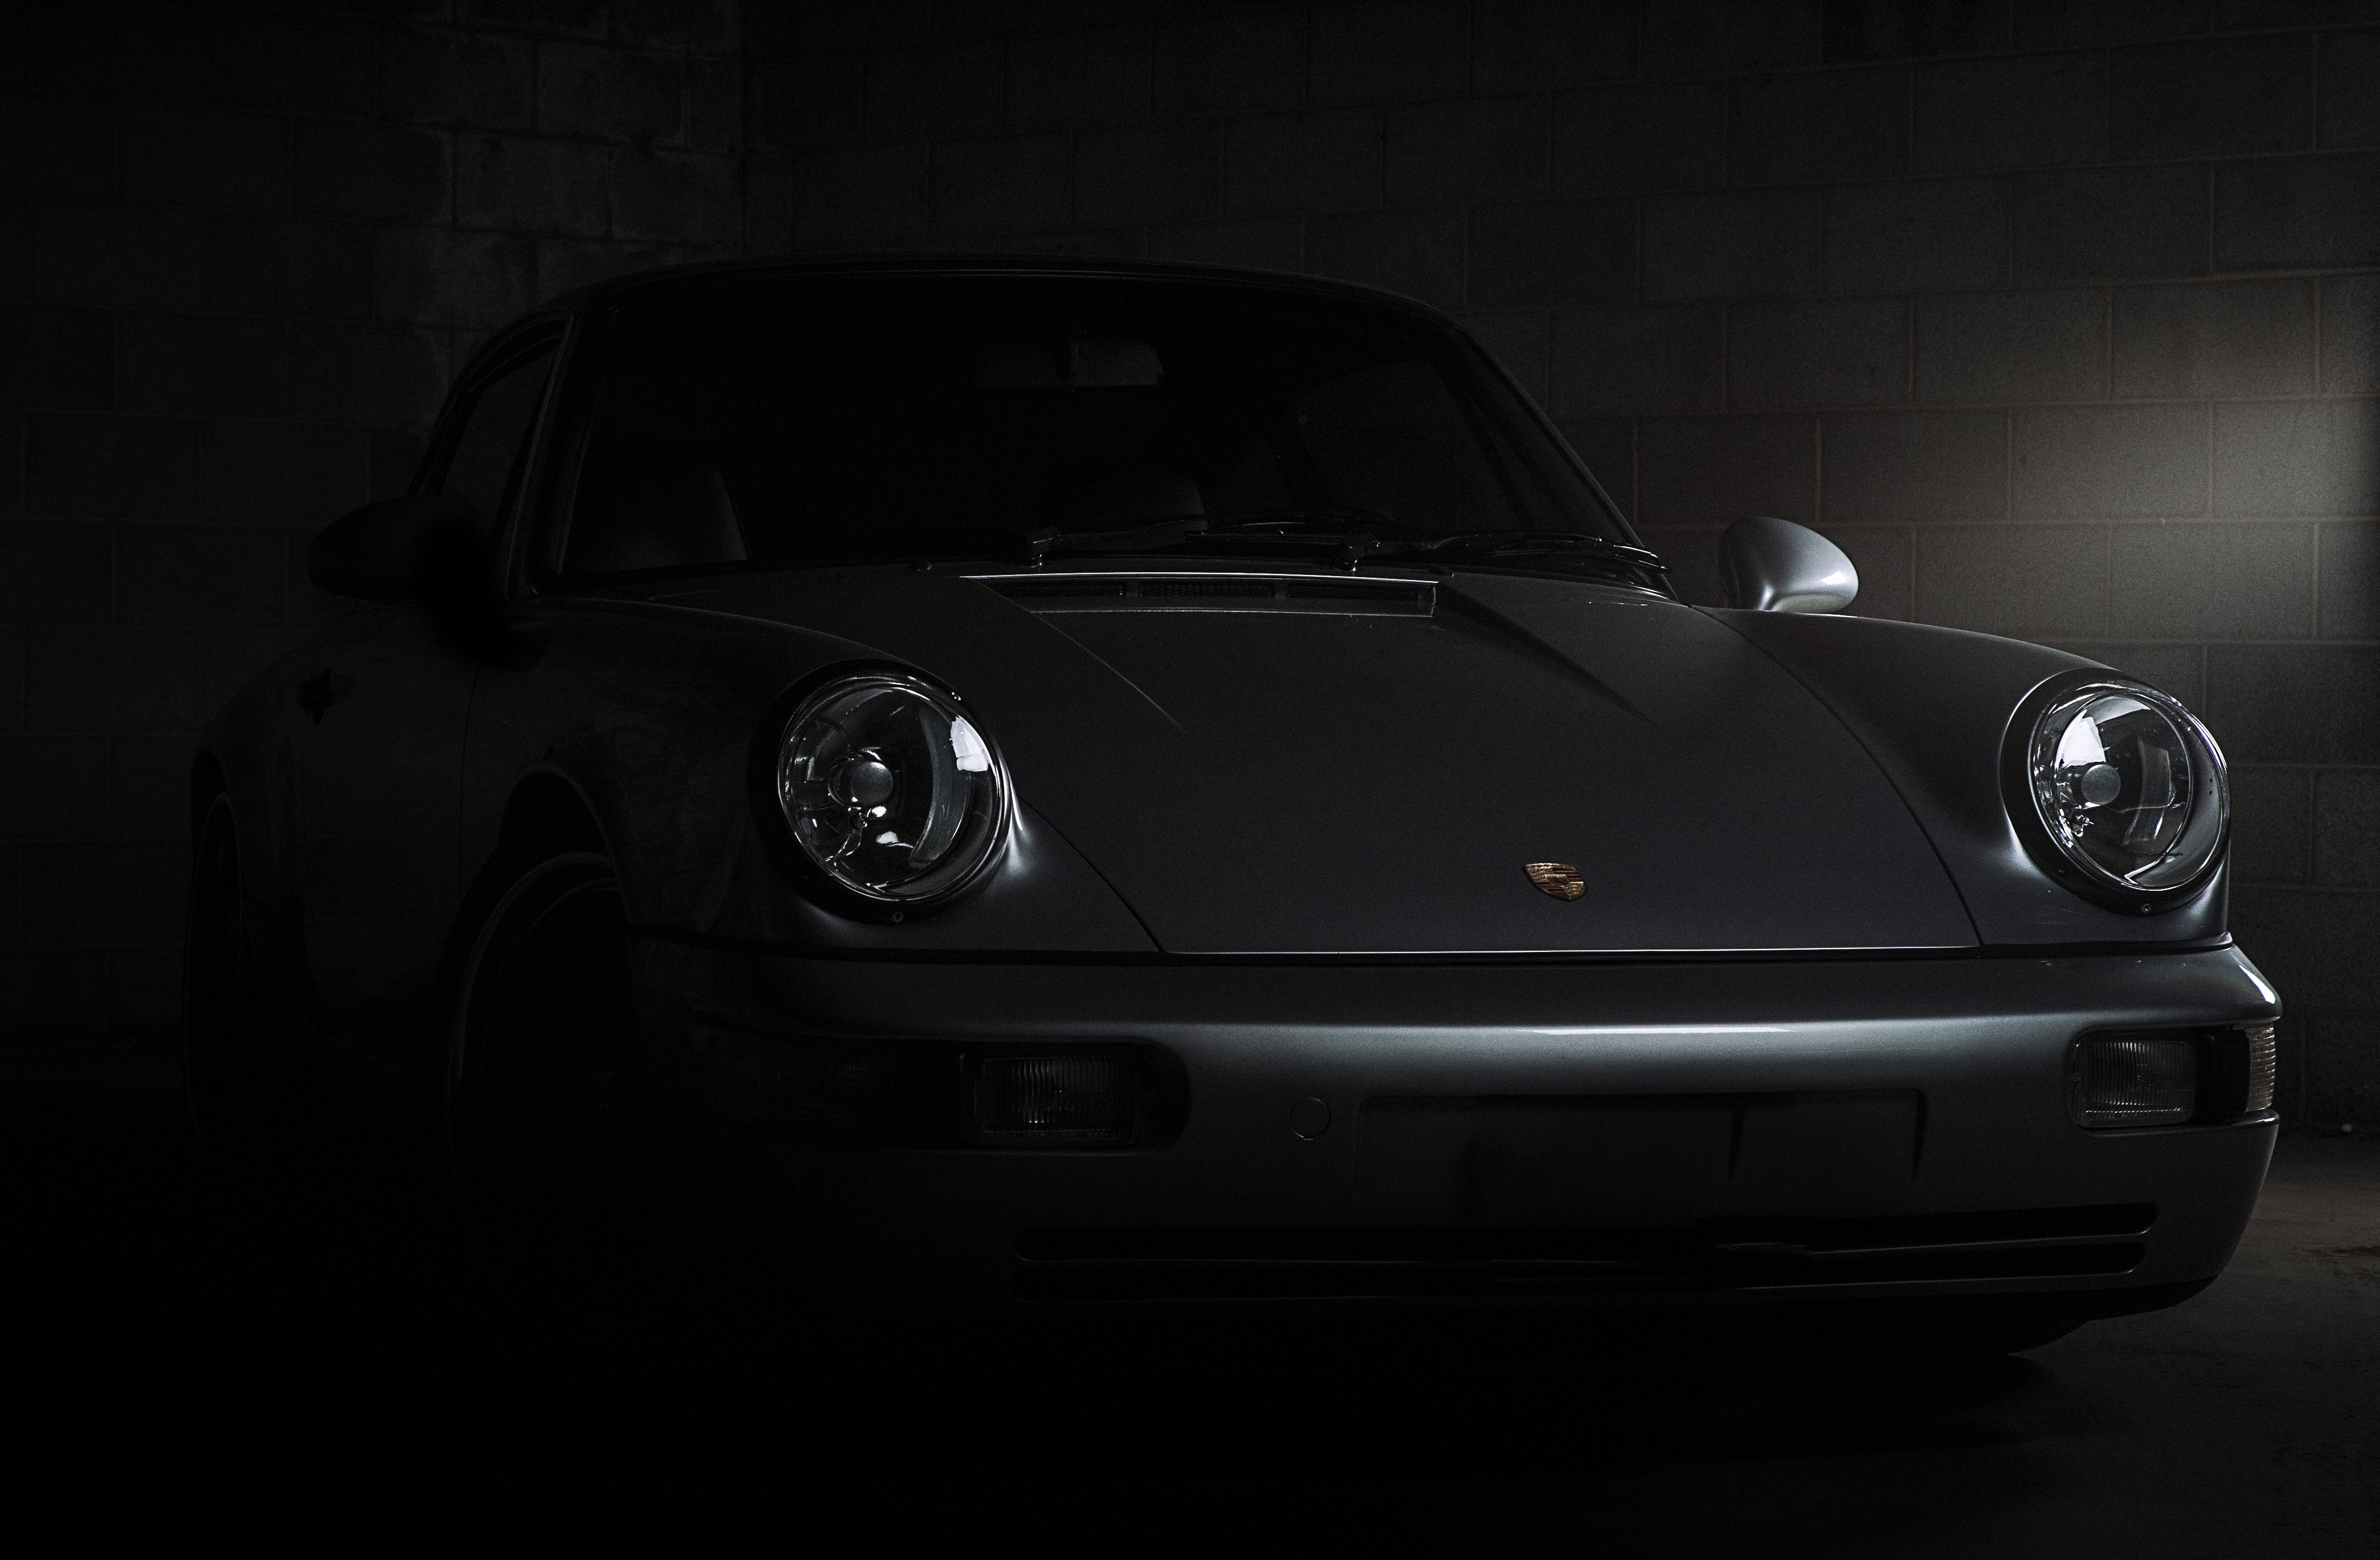 Your Ridiculously Awesome Porsche 911 Wallpaper Is Here Porsche 911 Porsche 911 Wallpaper Porsche